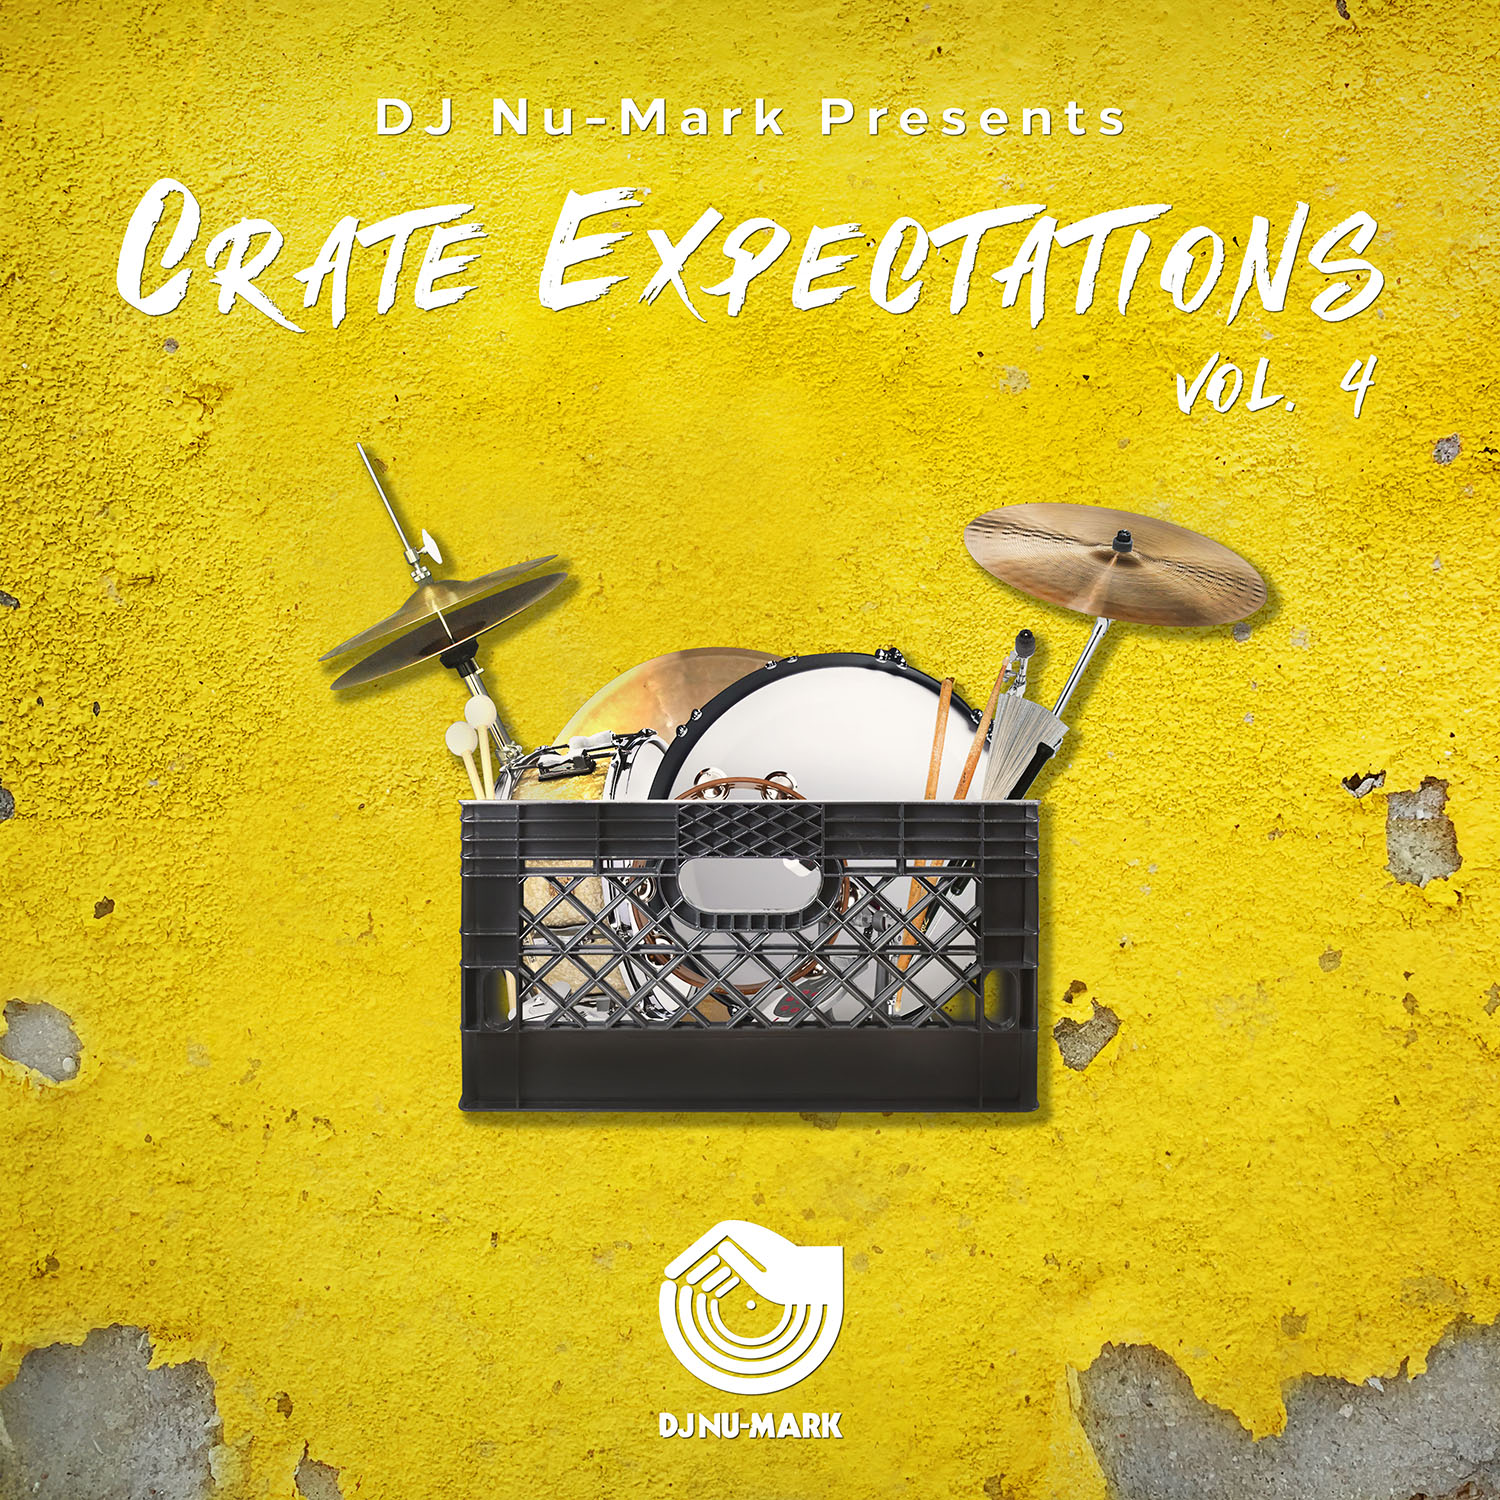 Crate Expectations Vol. 4